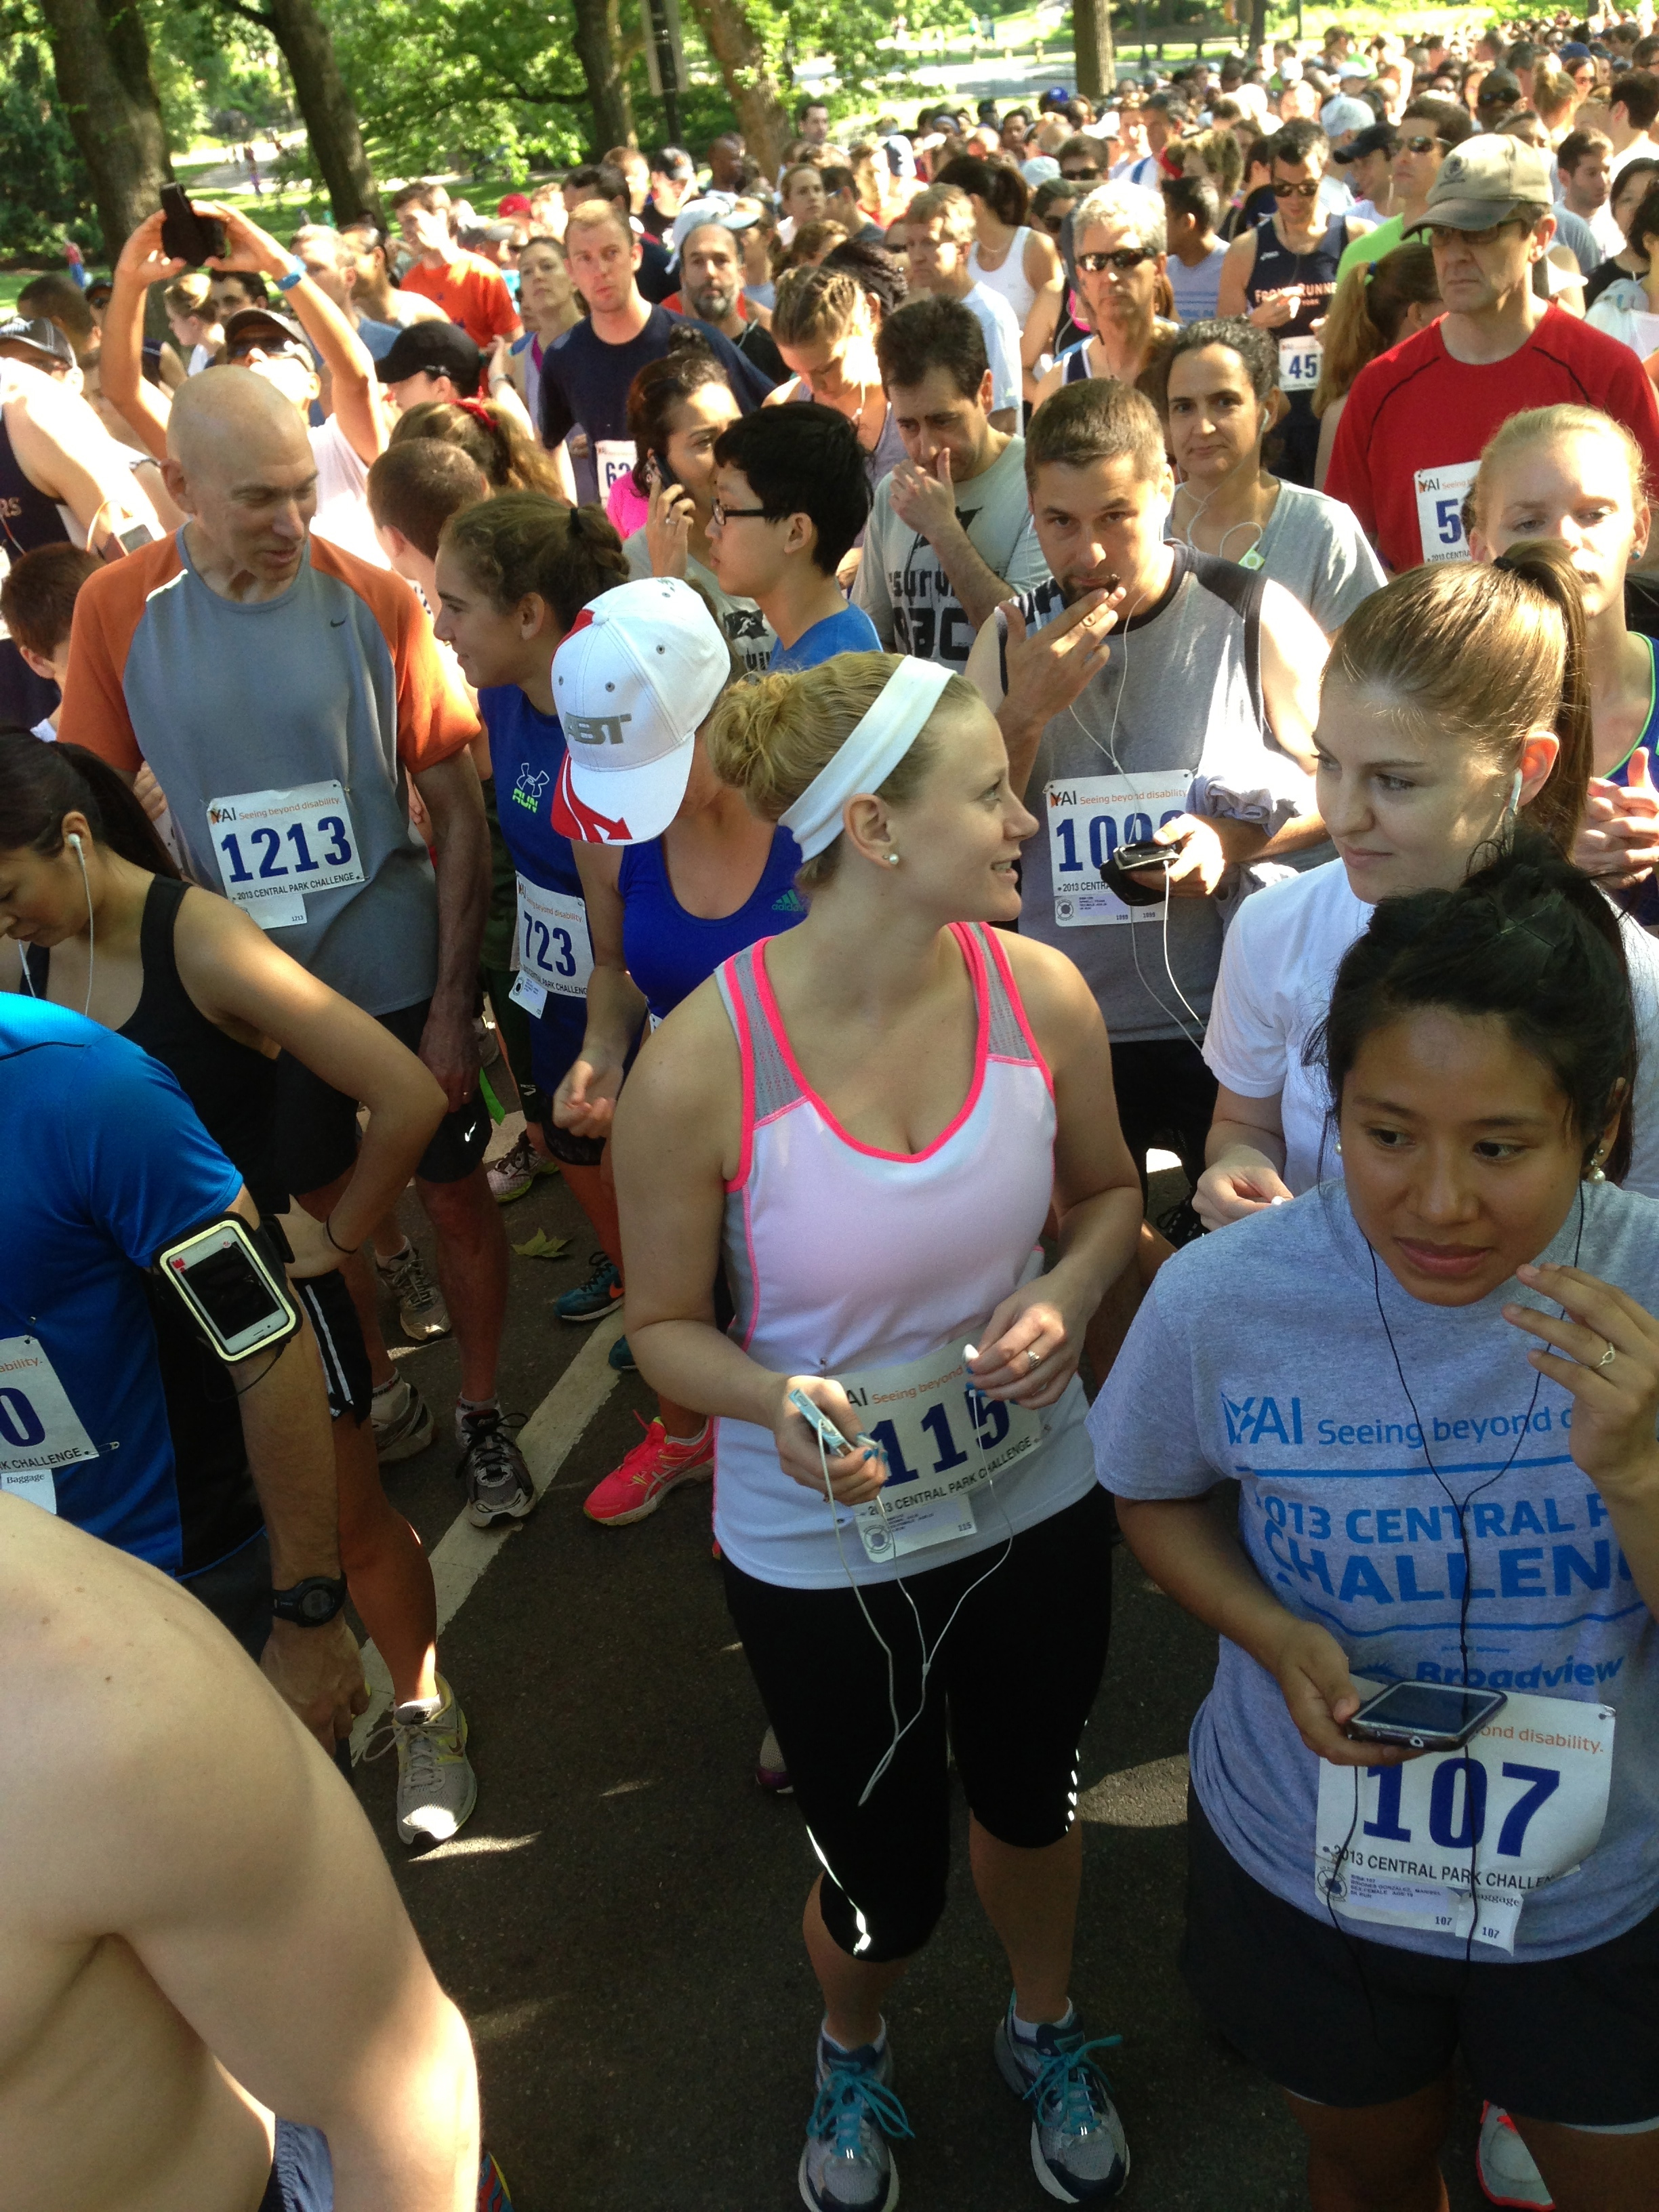 YAI Network Cenral Park Challenge 5K June 2013 in New York